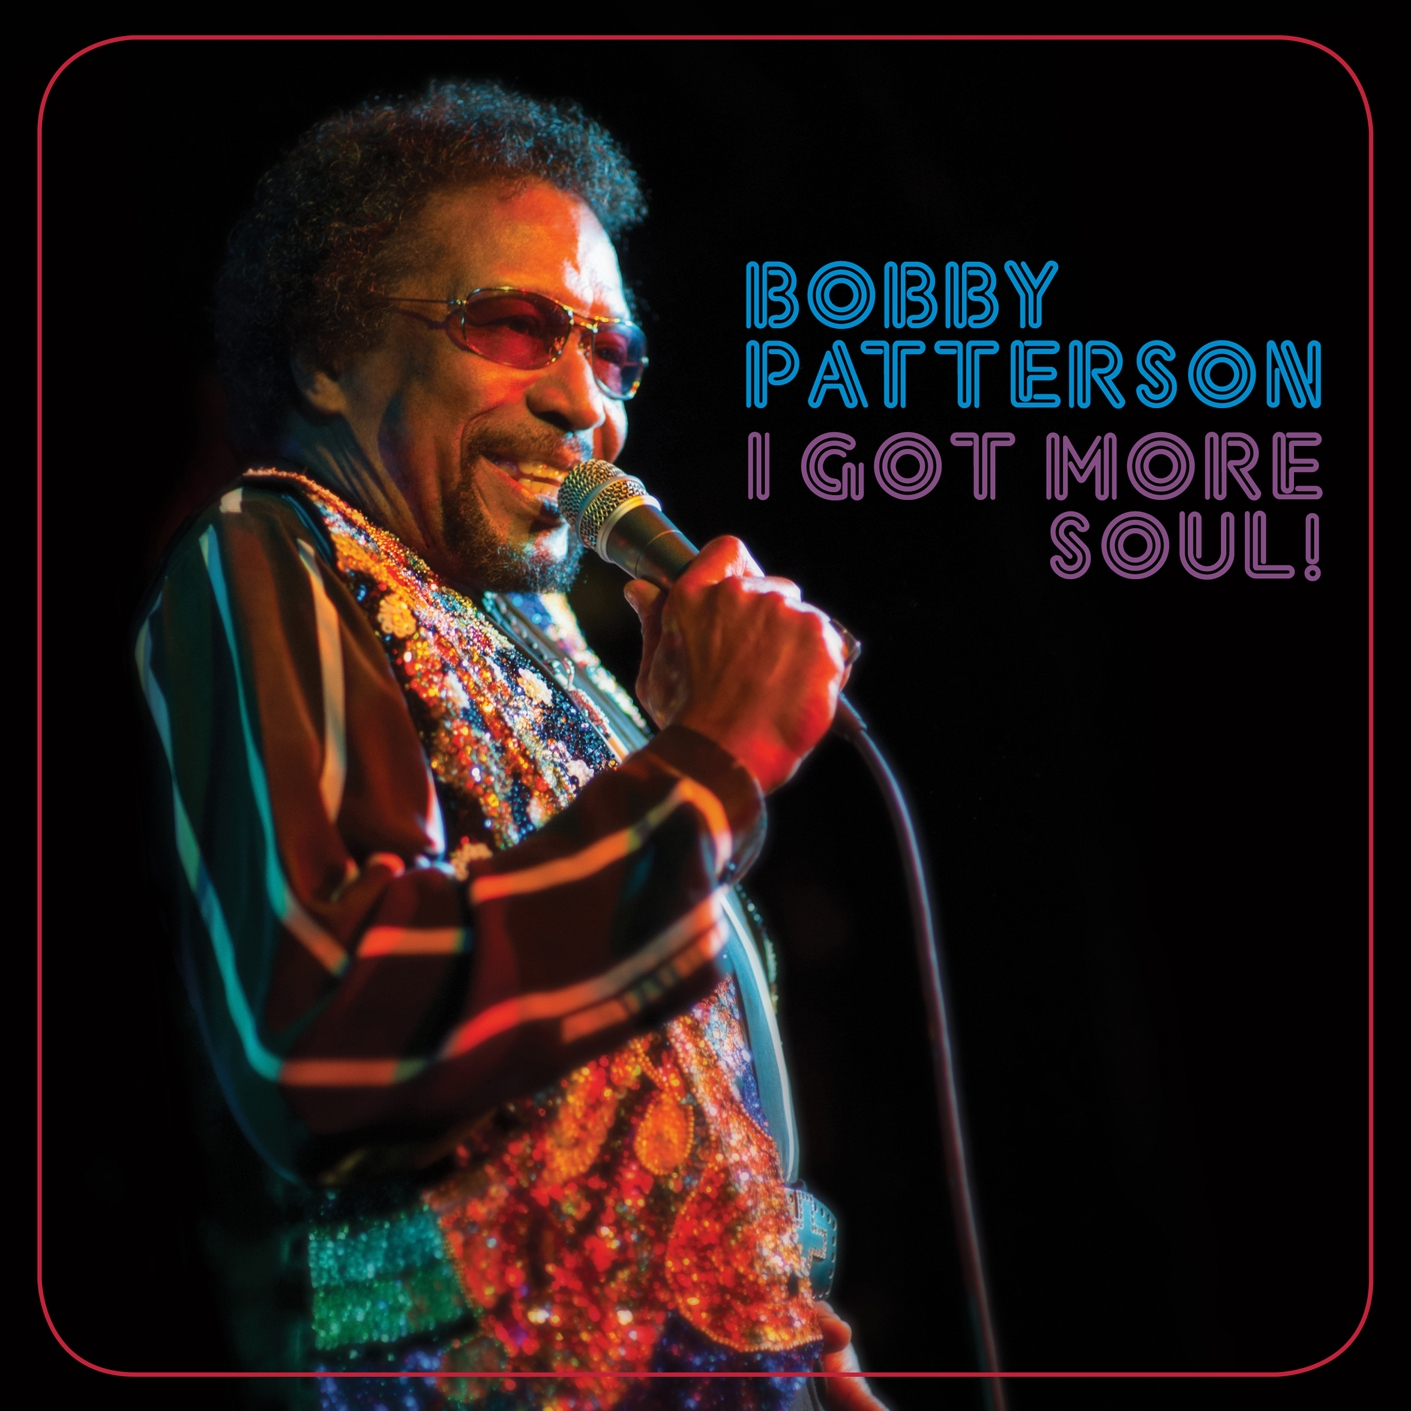 Bobby Patterson - I Got More Soul